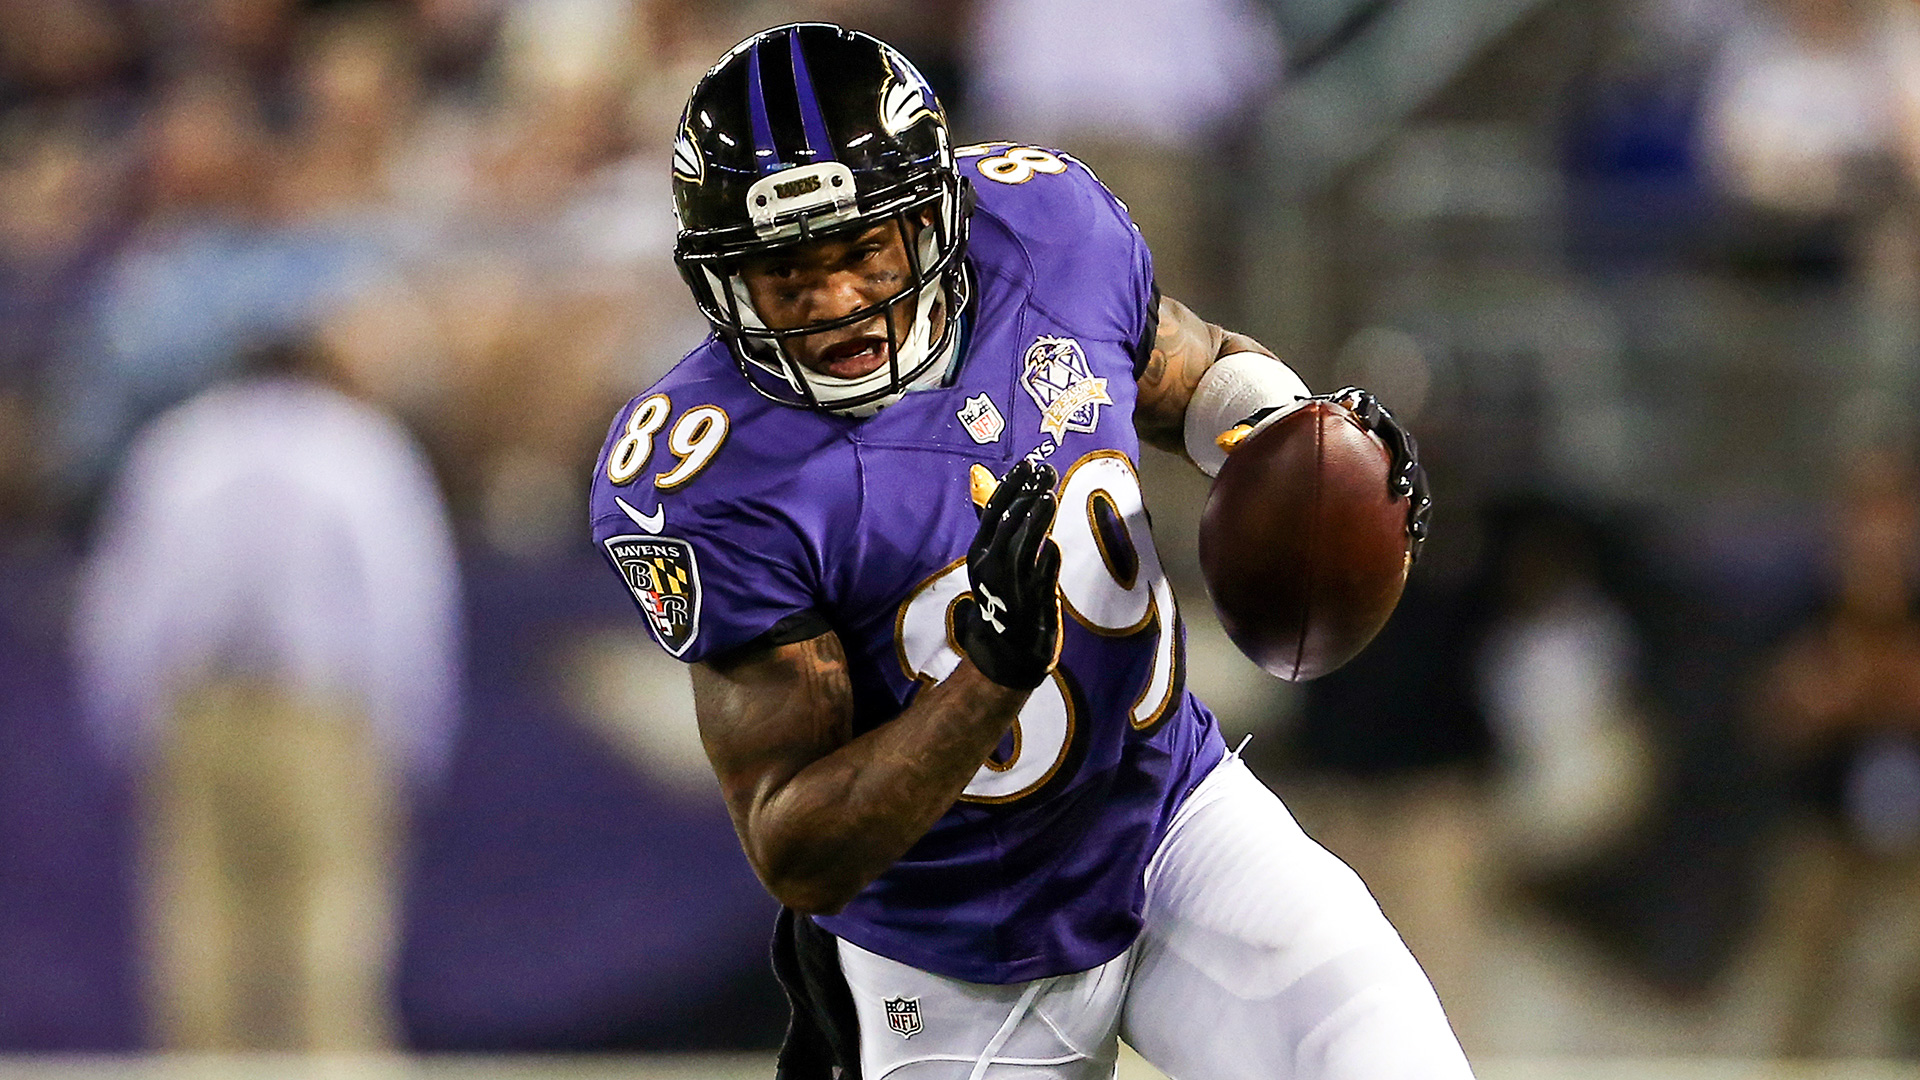 Steve Smiths young legs brings Ravens back with 50 yard 1920x1080